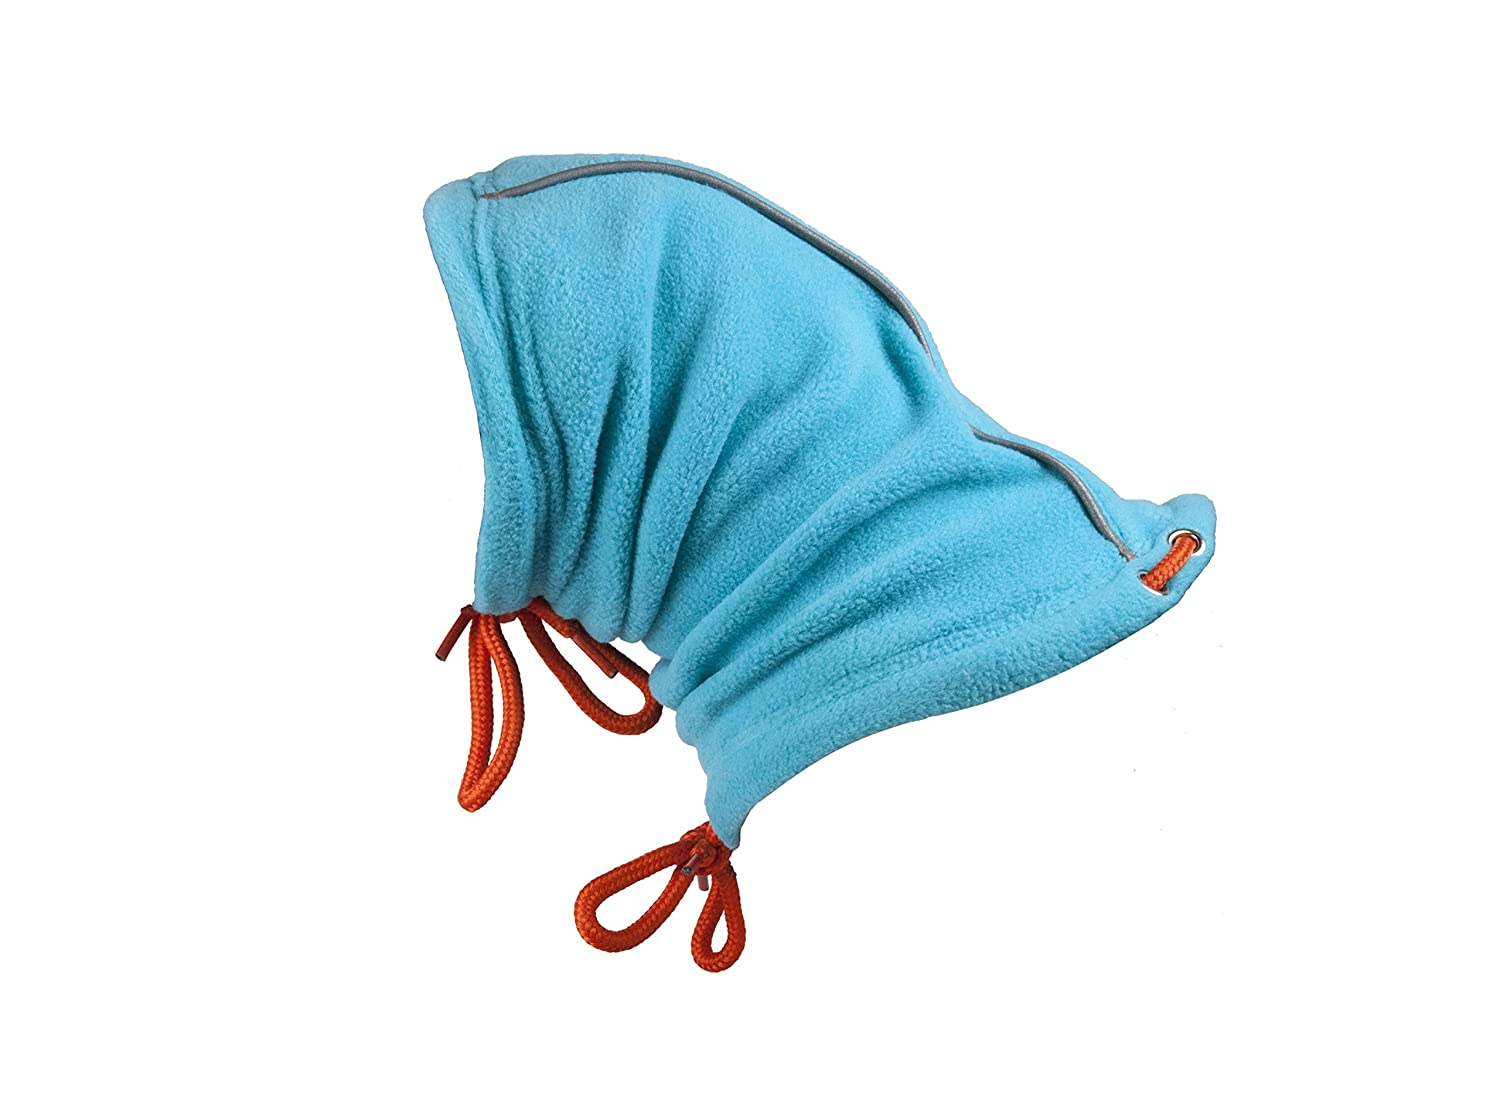 (Small, Teal orange) RC Pet Products Summit Dog Snood, Dog Neck Warmer